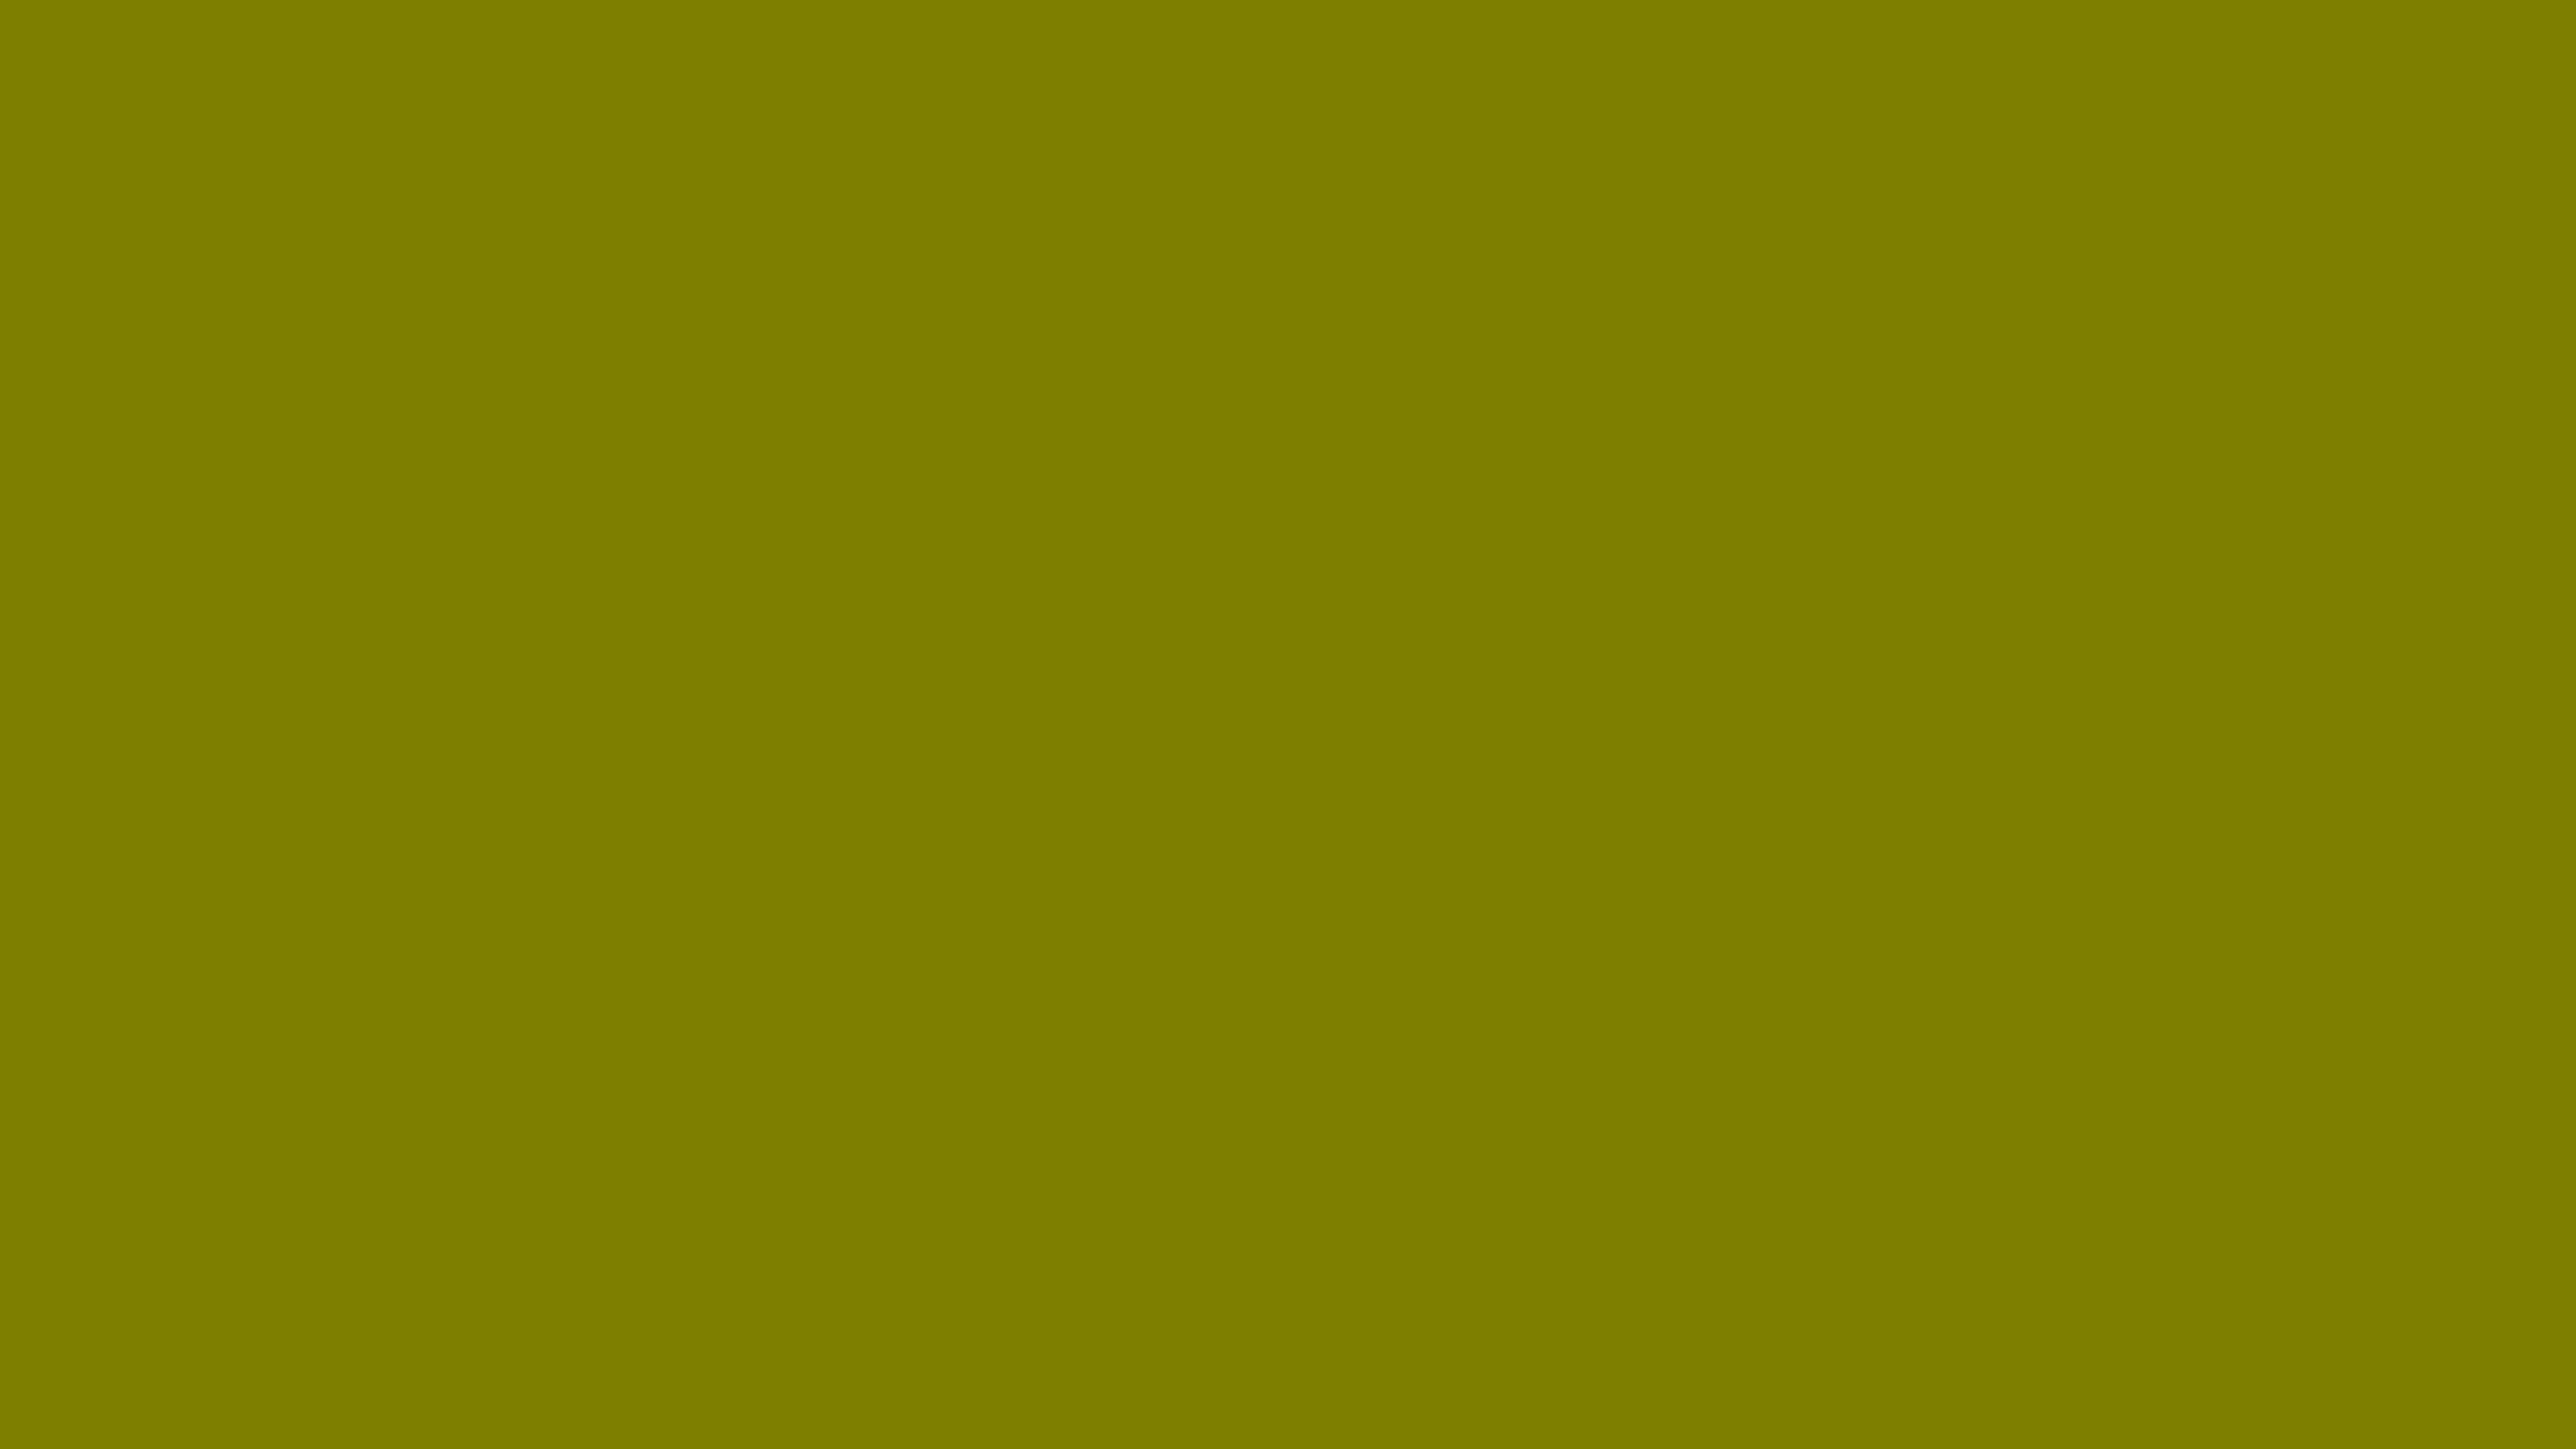 7680x4320 Olive Solid Color Background